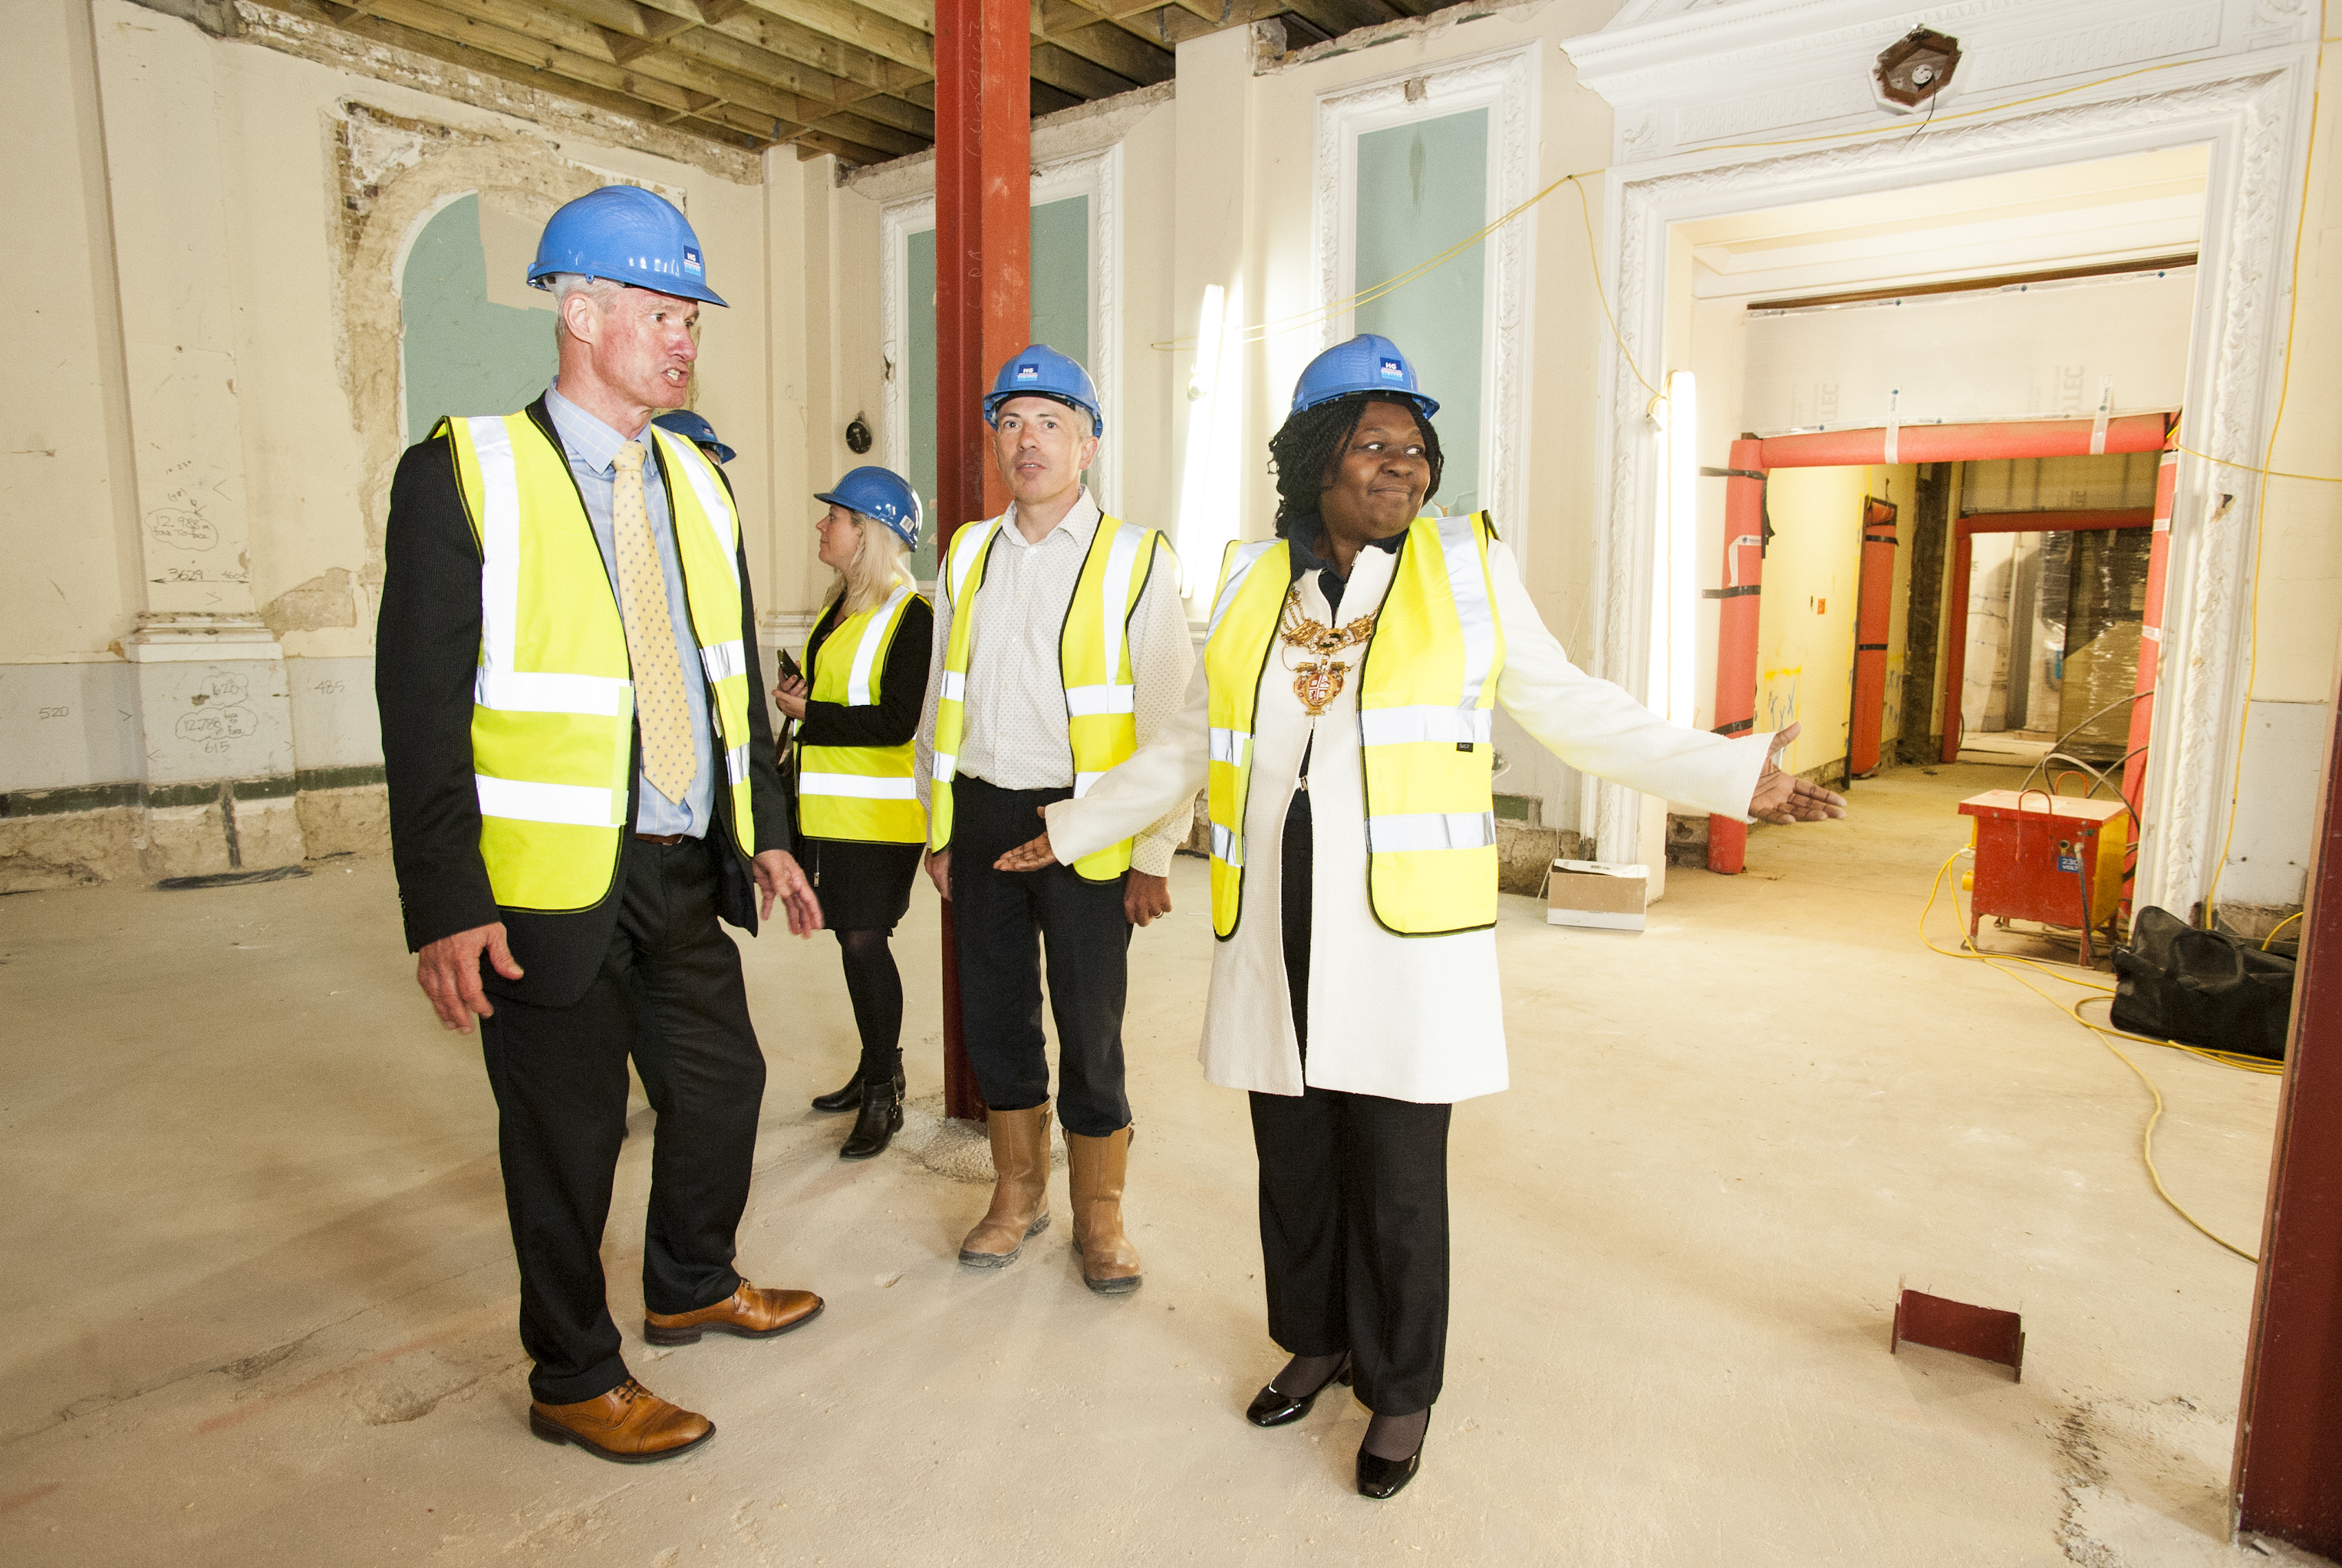 Photographs at an event showcasing the redevelopment of the former Town Hall on Peckham Road, Southwark, into student accommodation, Thursday 15th October 2015